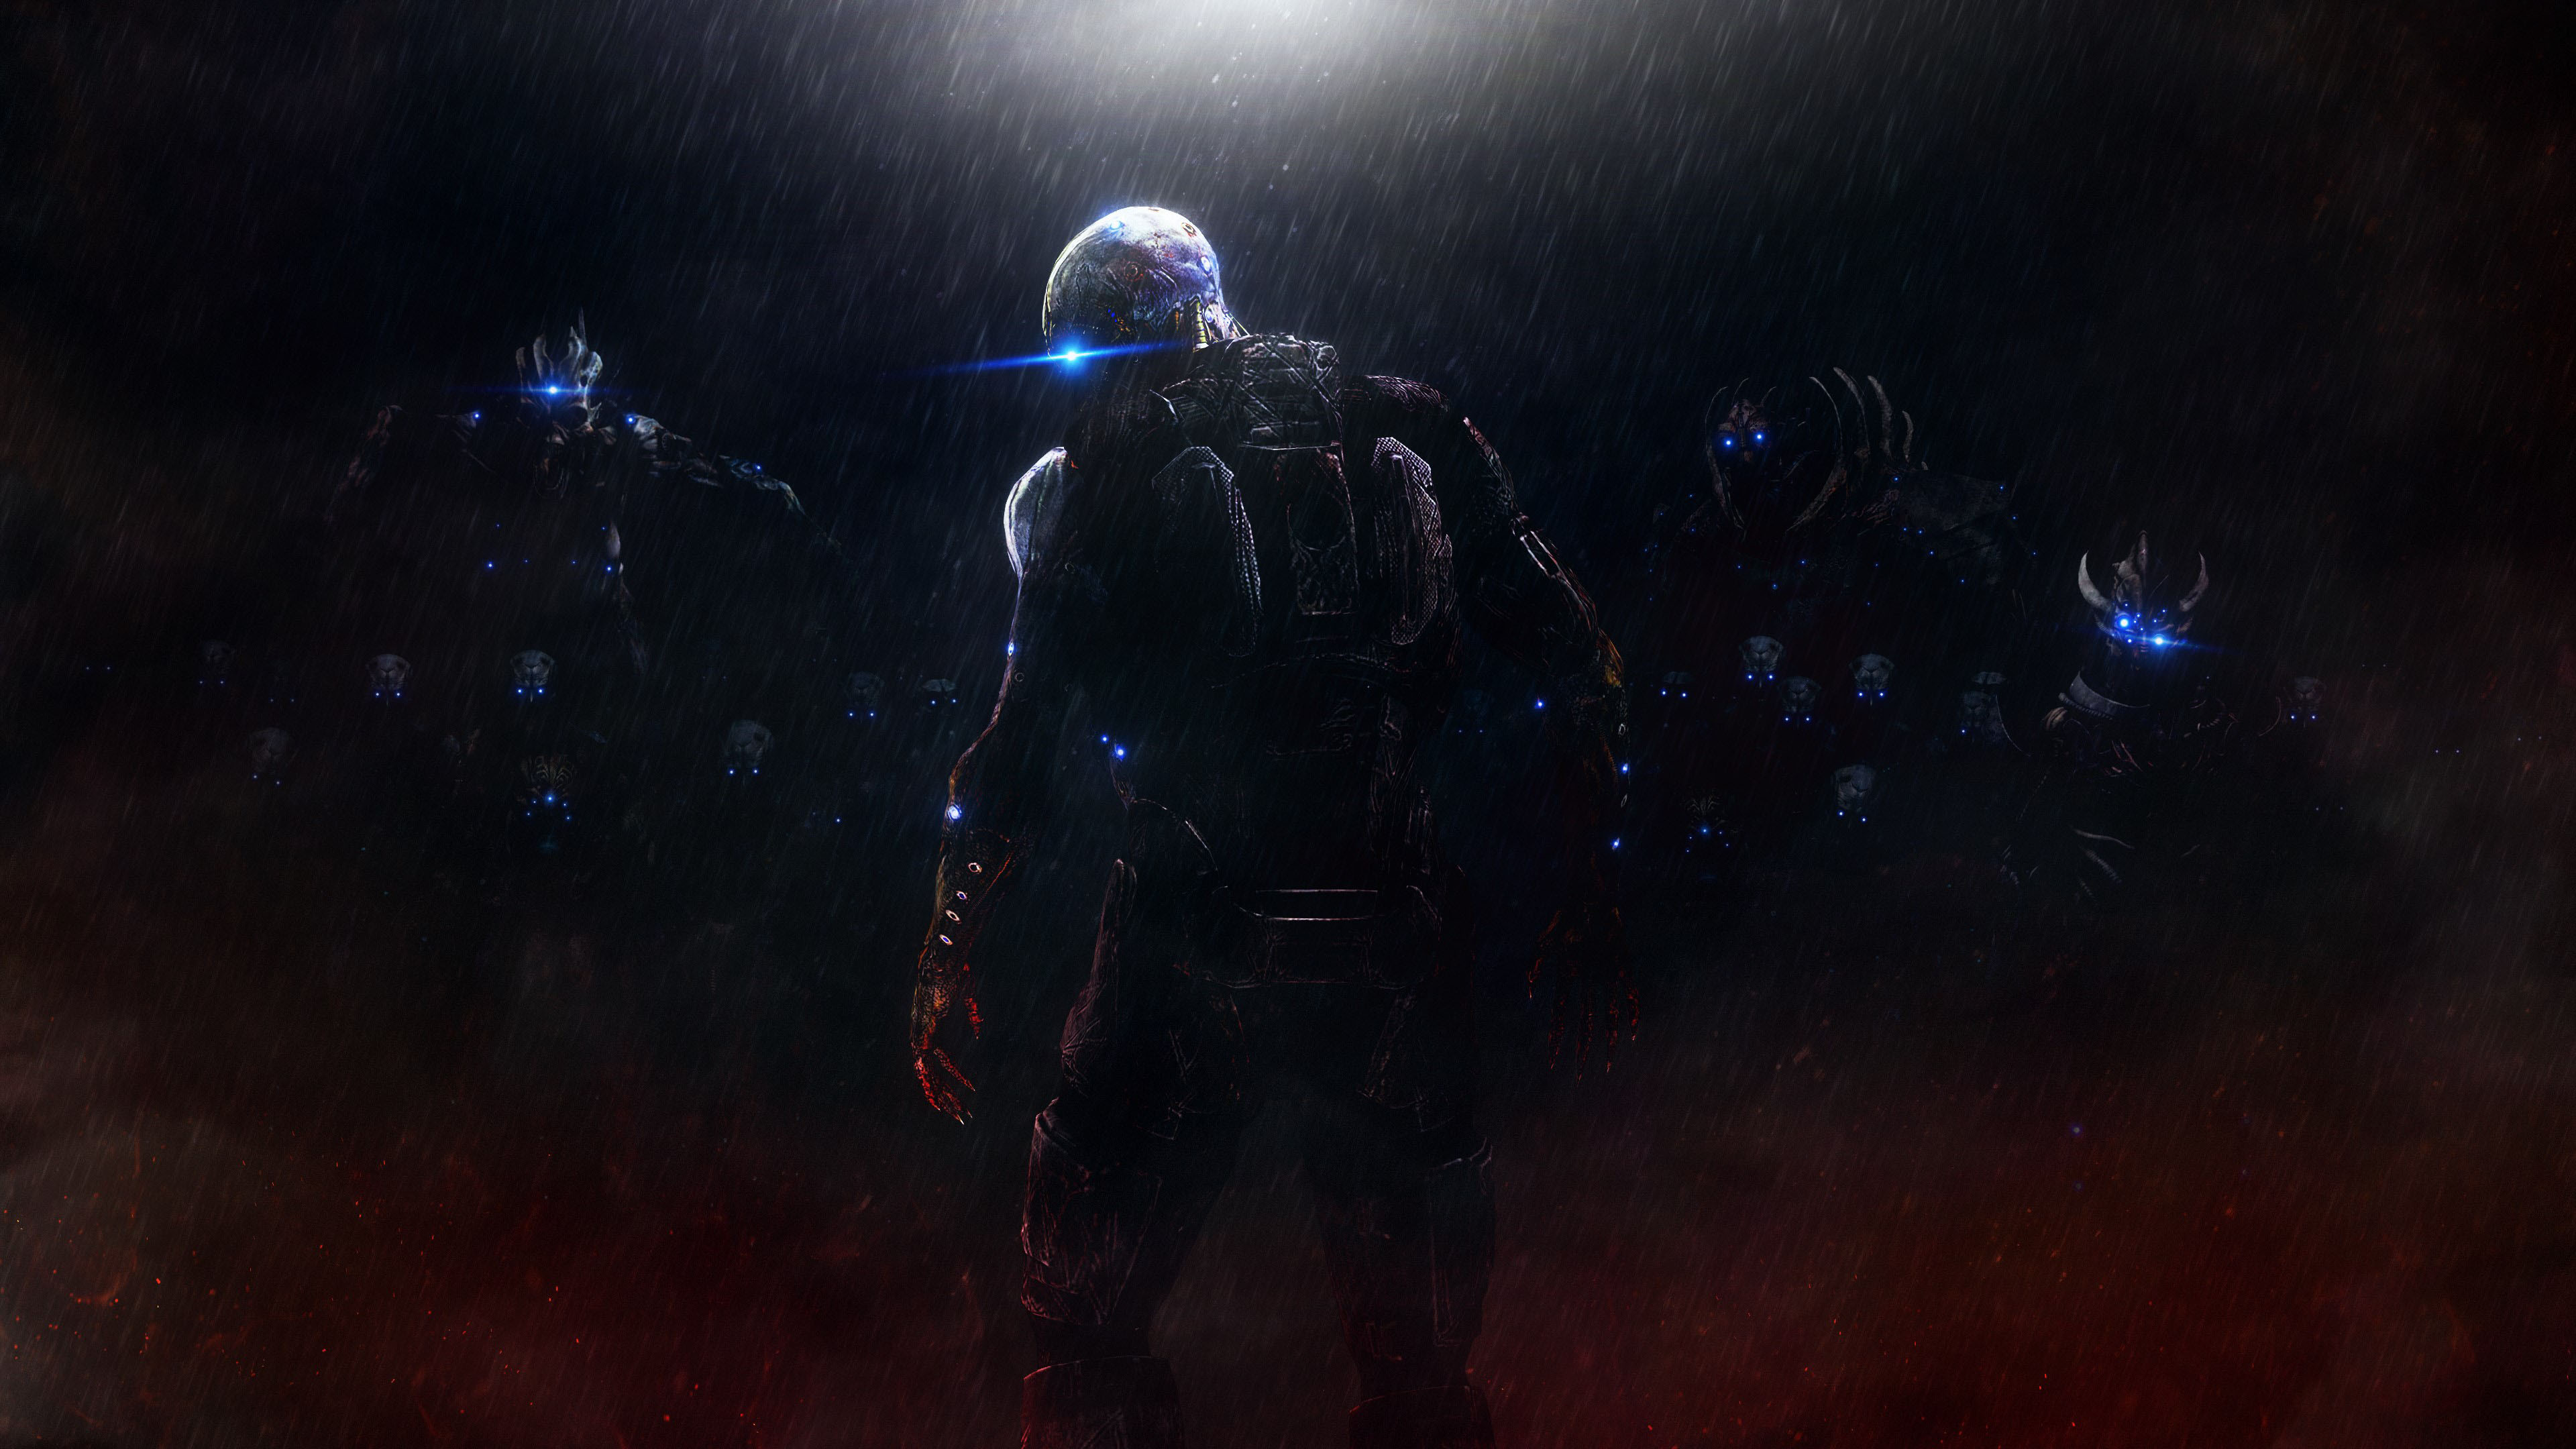 Mass Effect: Ascension wallpaper 3840x2160